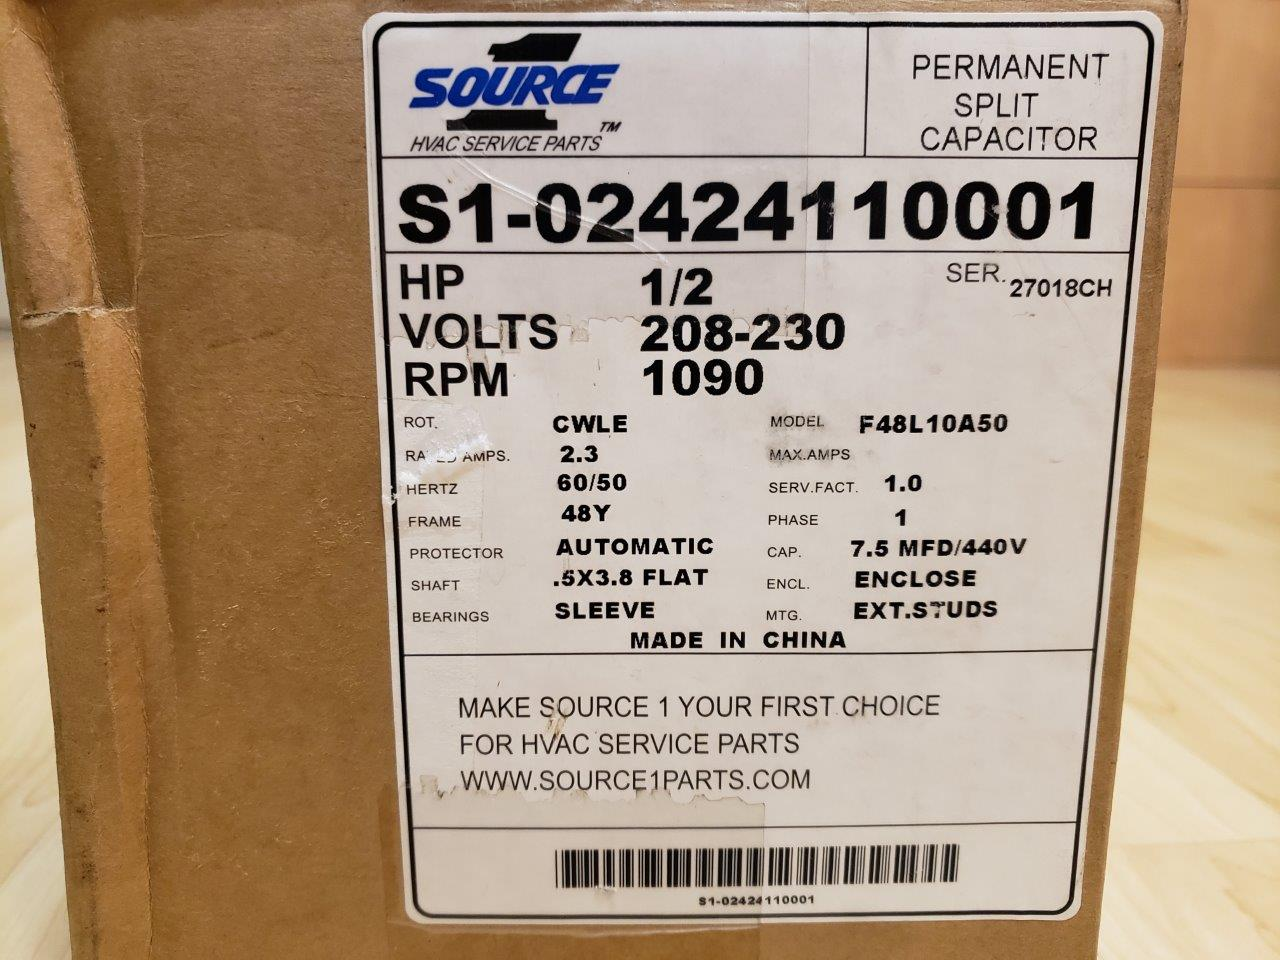 OEM York Coleman Luxaire Condenser Fan Motor 1/2 HP S1-02424110001 024-24110-001 F48L10A50